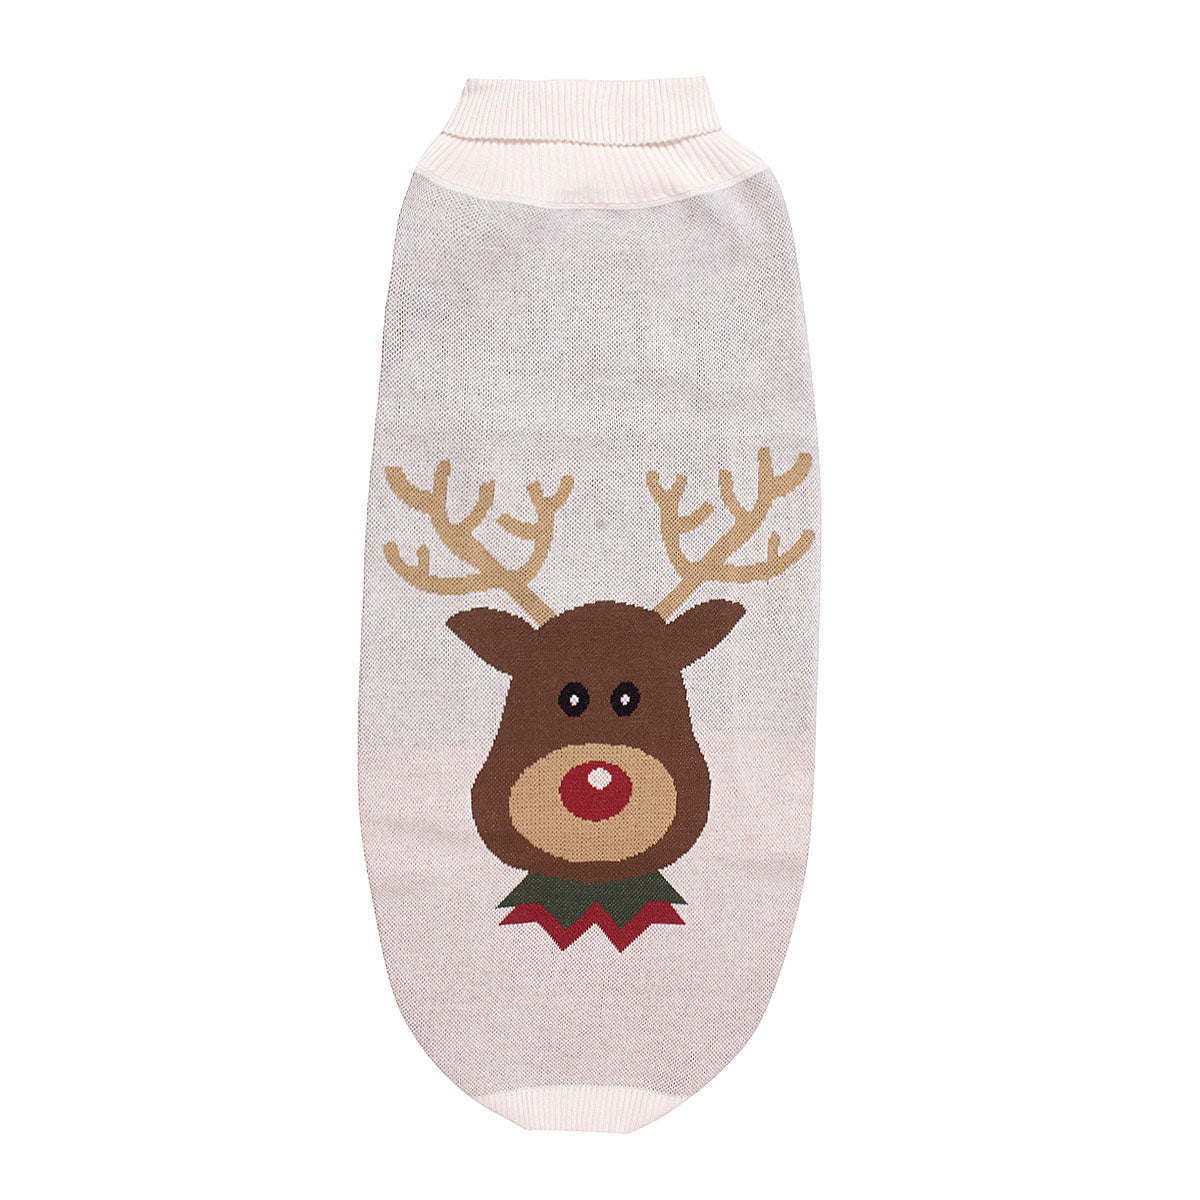 Halo Reindeer Dog Sweater_1603